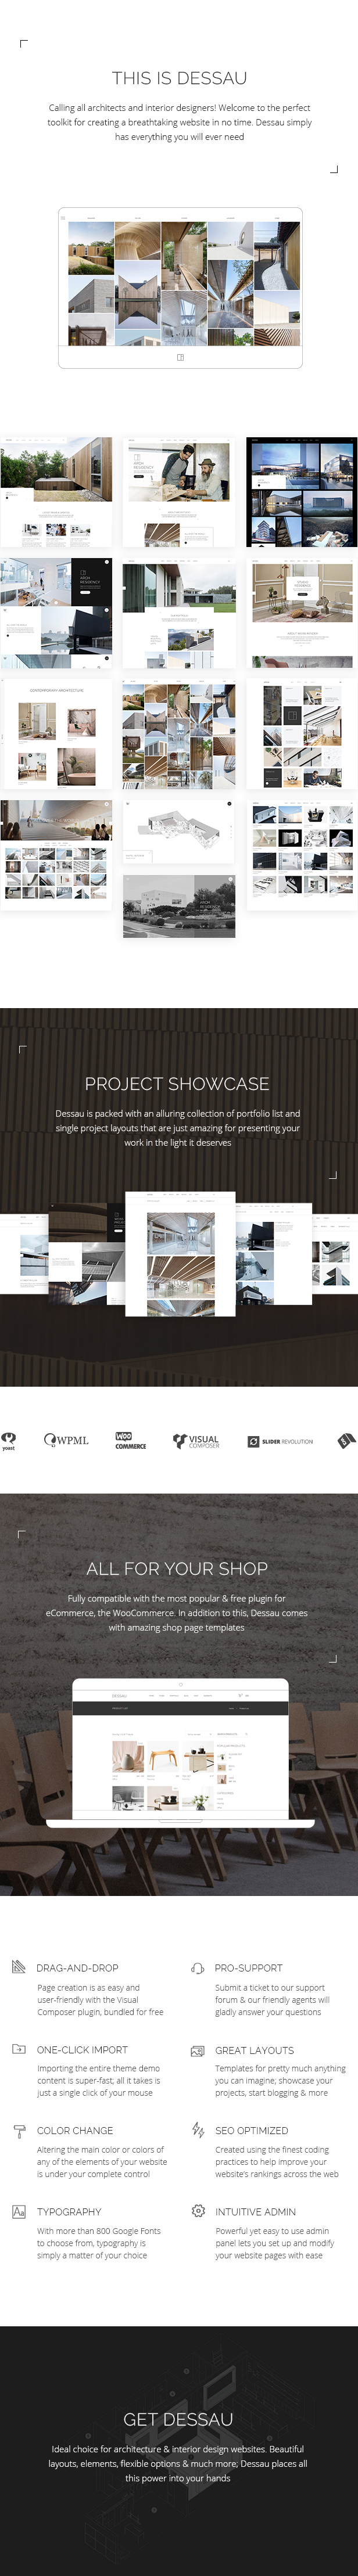 WordPress theme Dessau - A Contemporary Theme for Architects and Interior Designers (Portfolio)